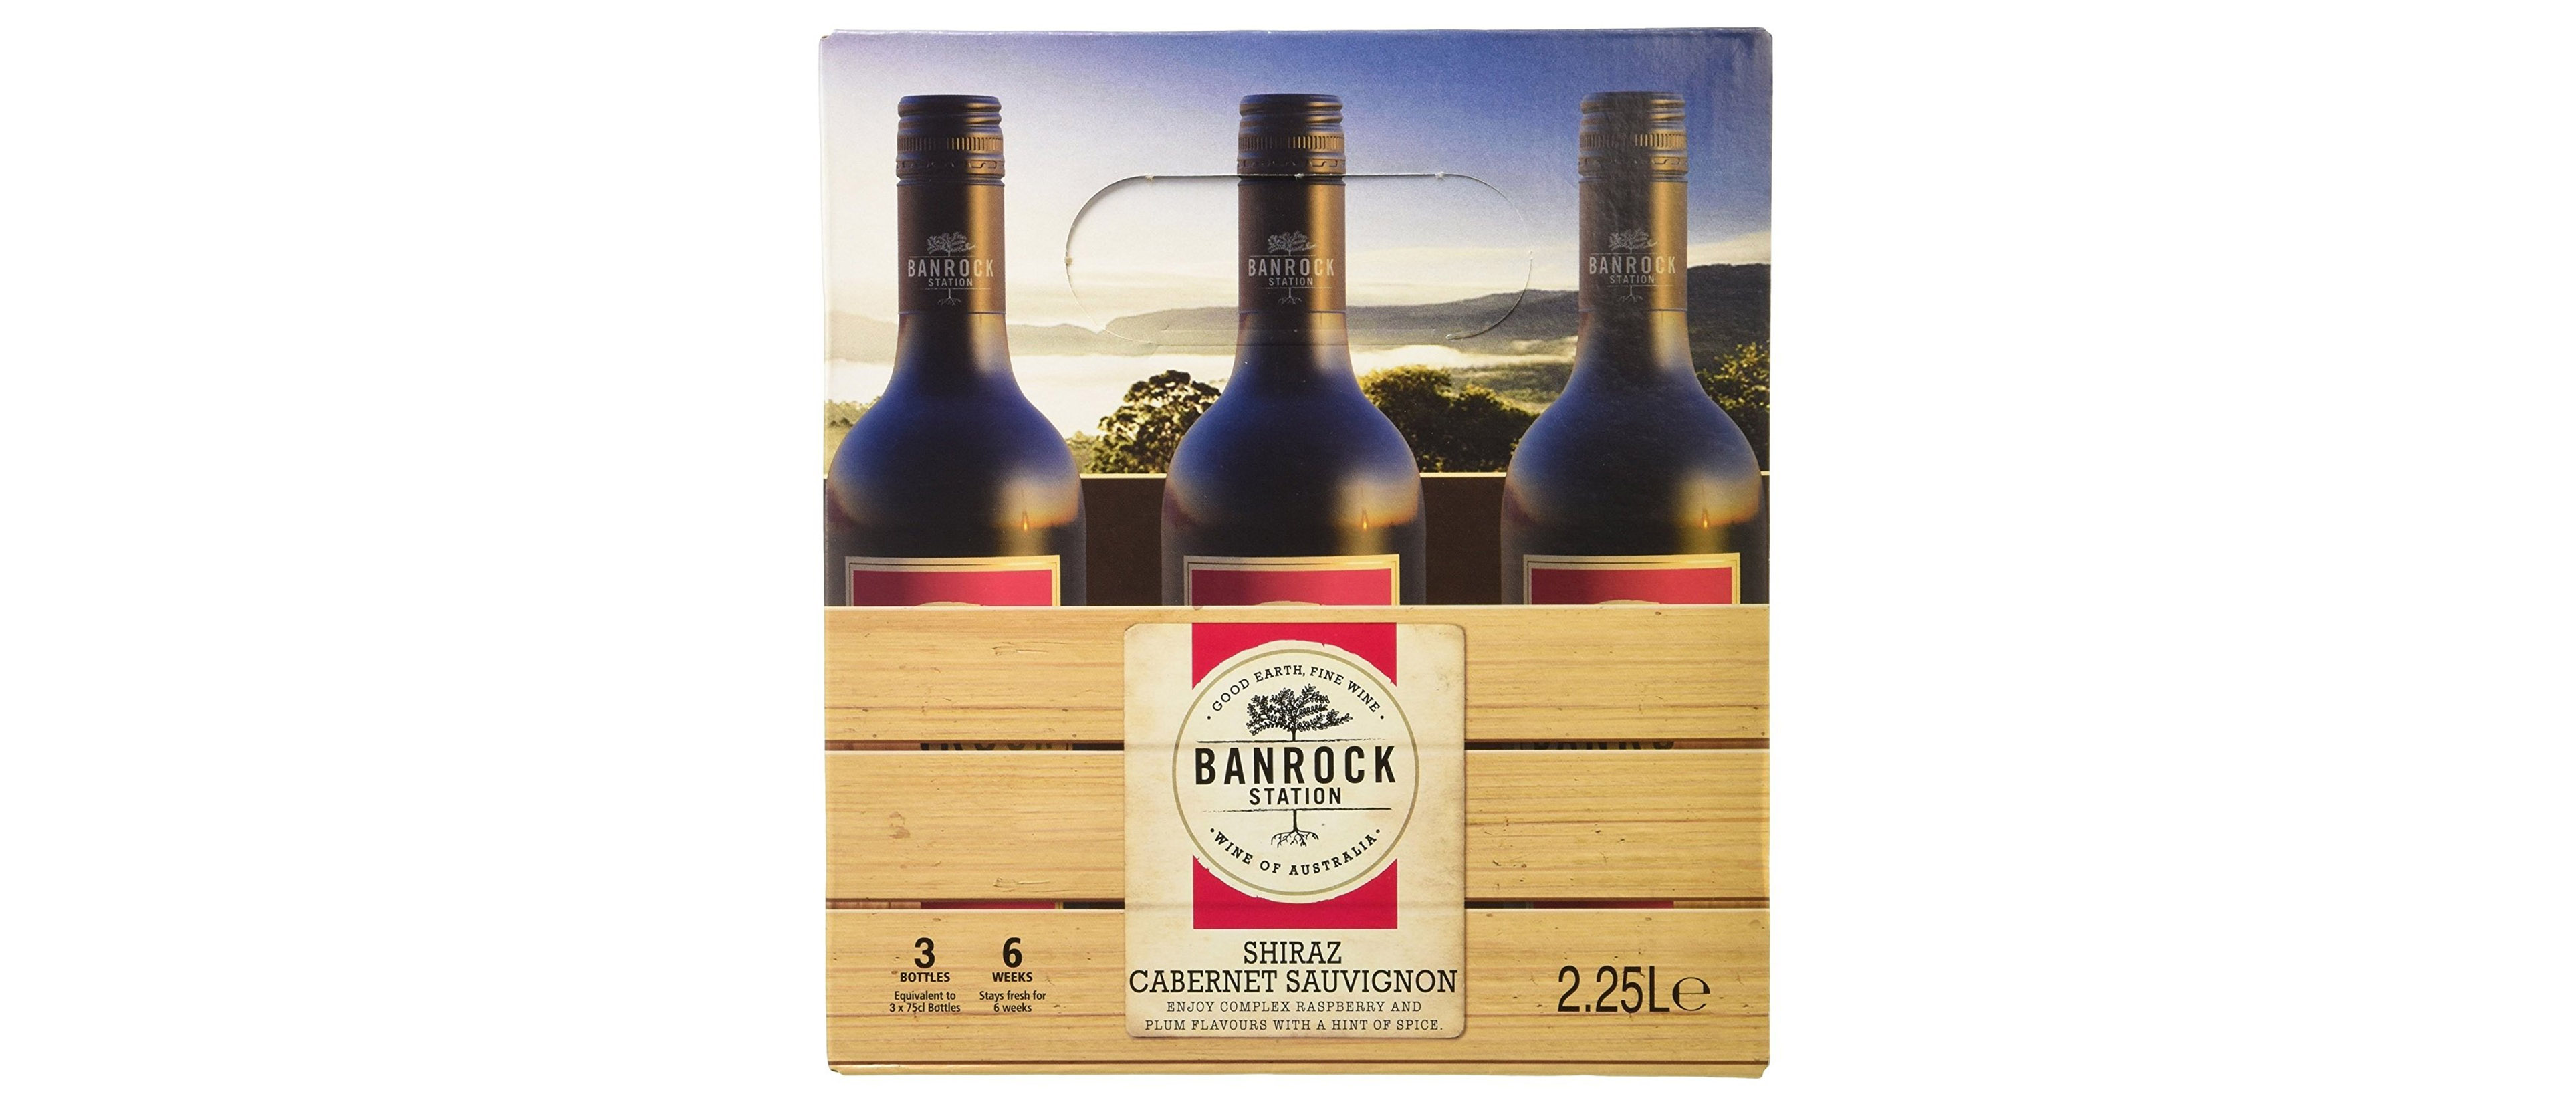 Banrock Station Shiraz Cabernet, Australia (Amazon/PA)